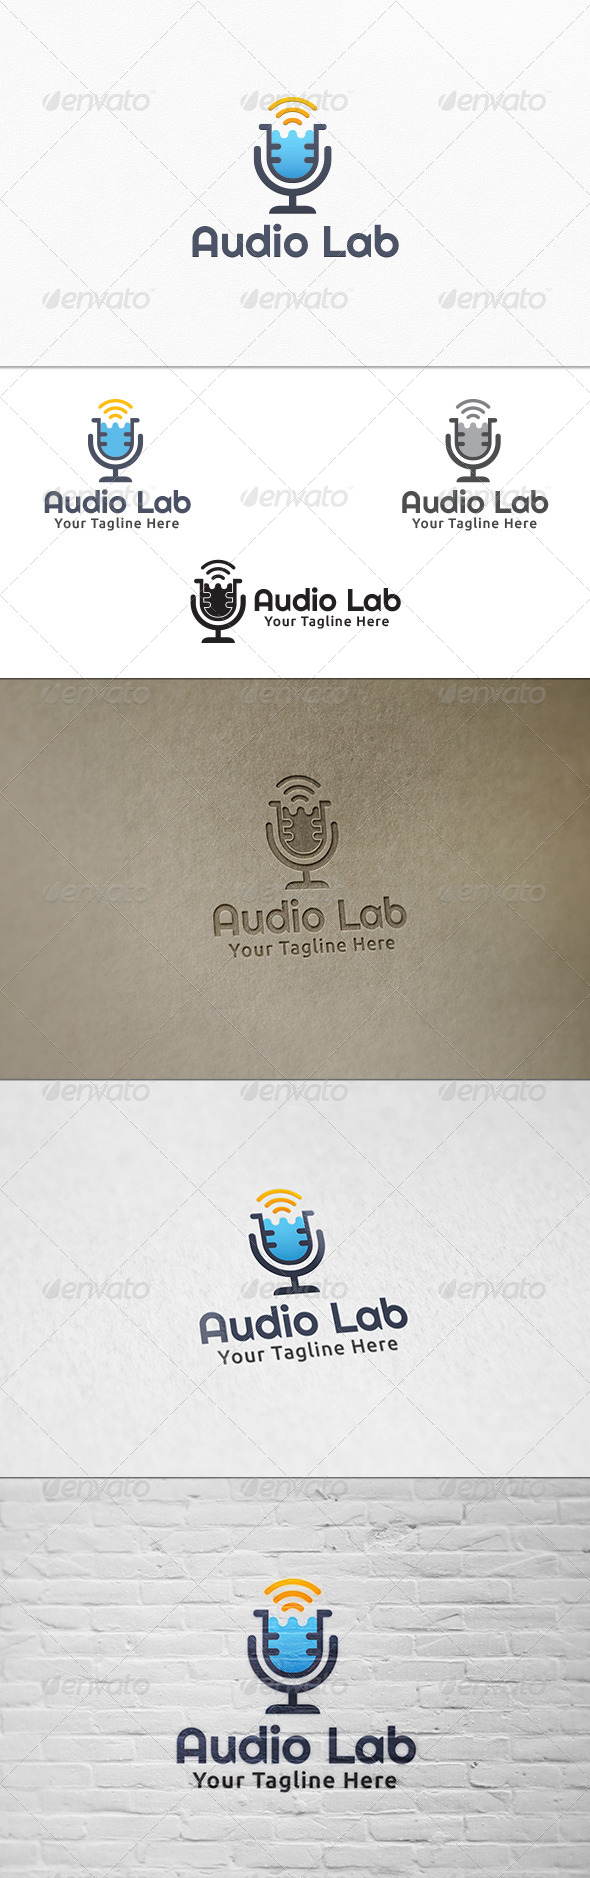 GraphicRiver Audio Lab Logo Template 7555201